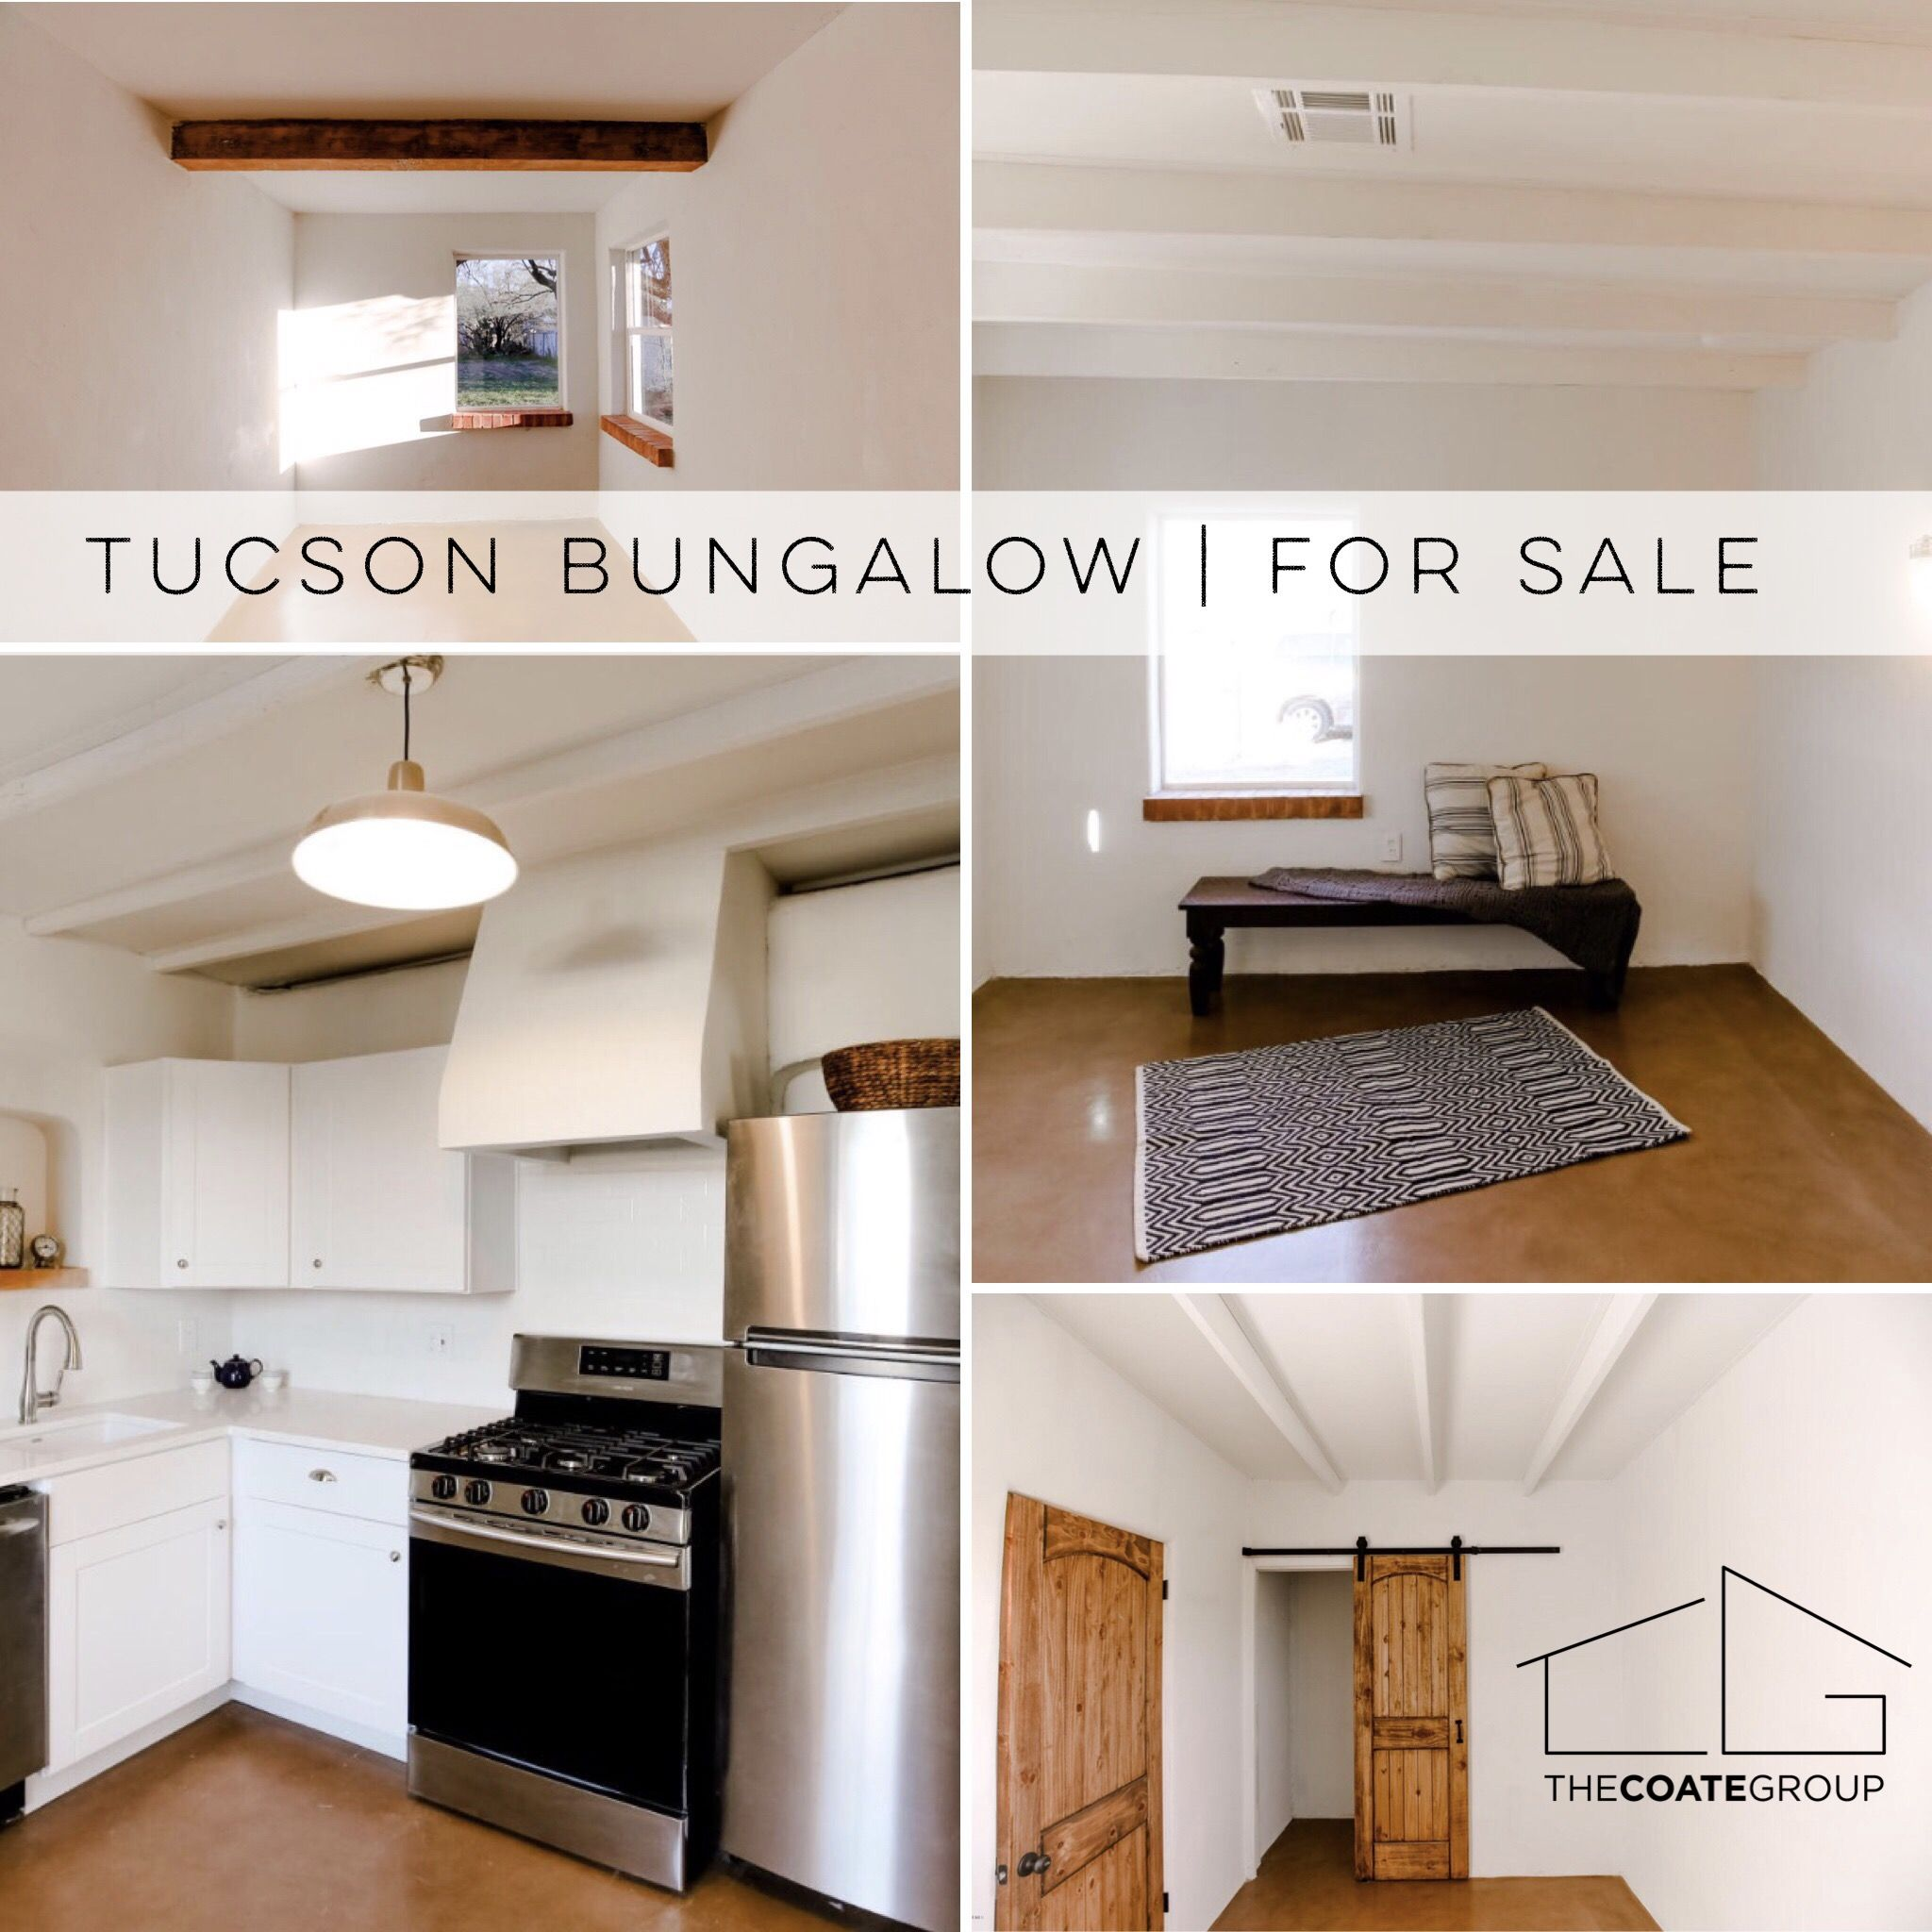 Bungalow home in tucson az for sale tucson homes for sale